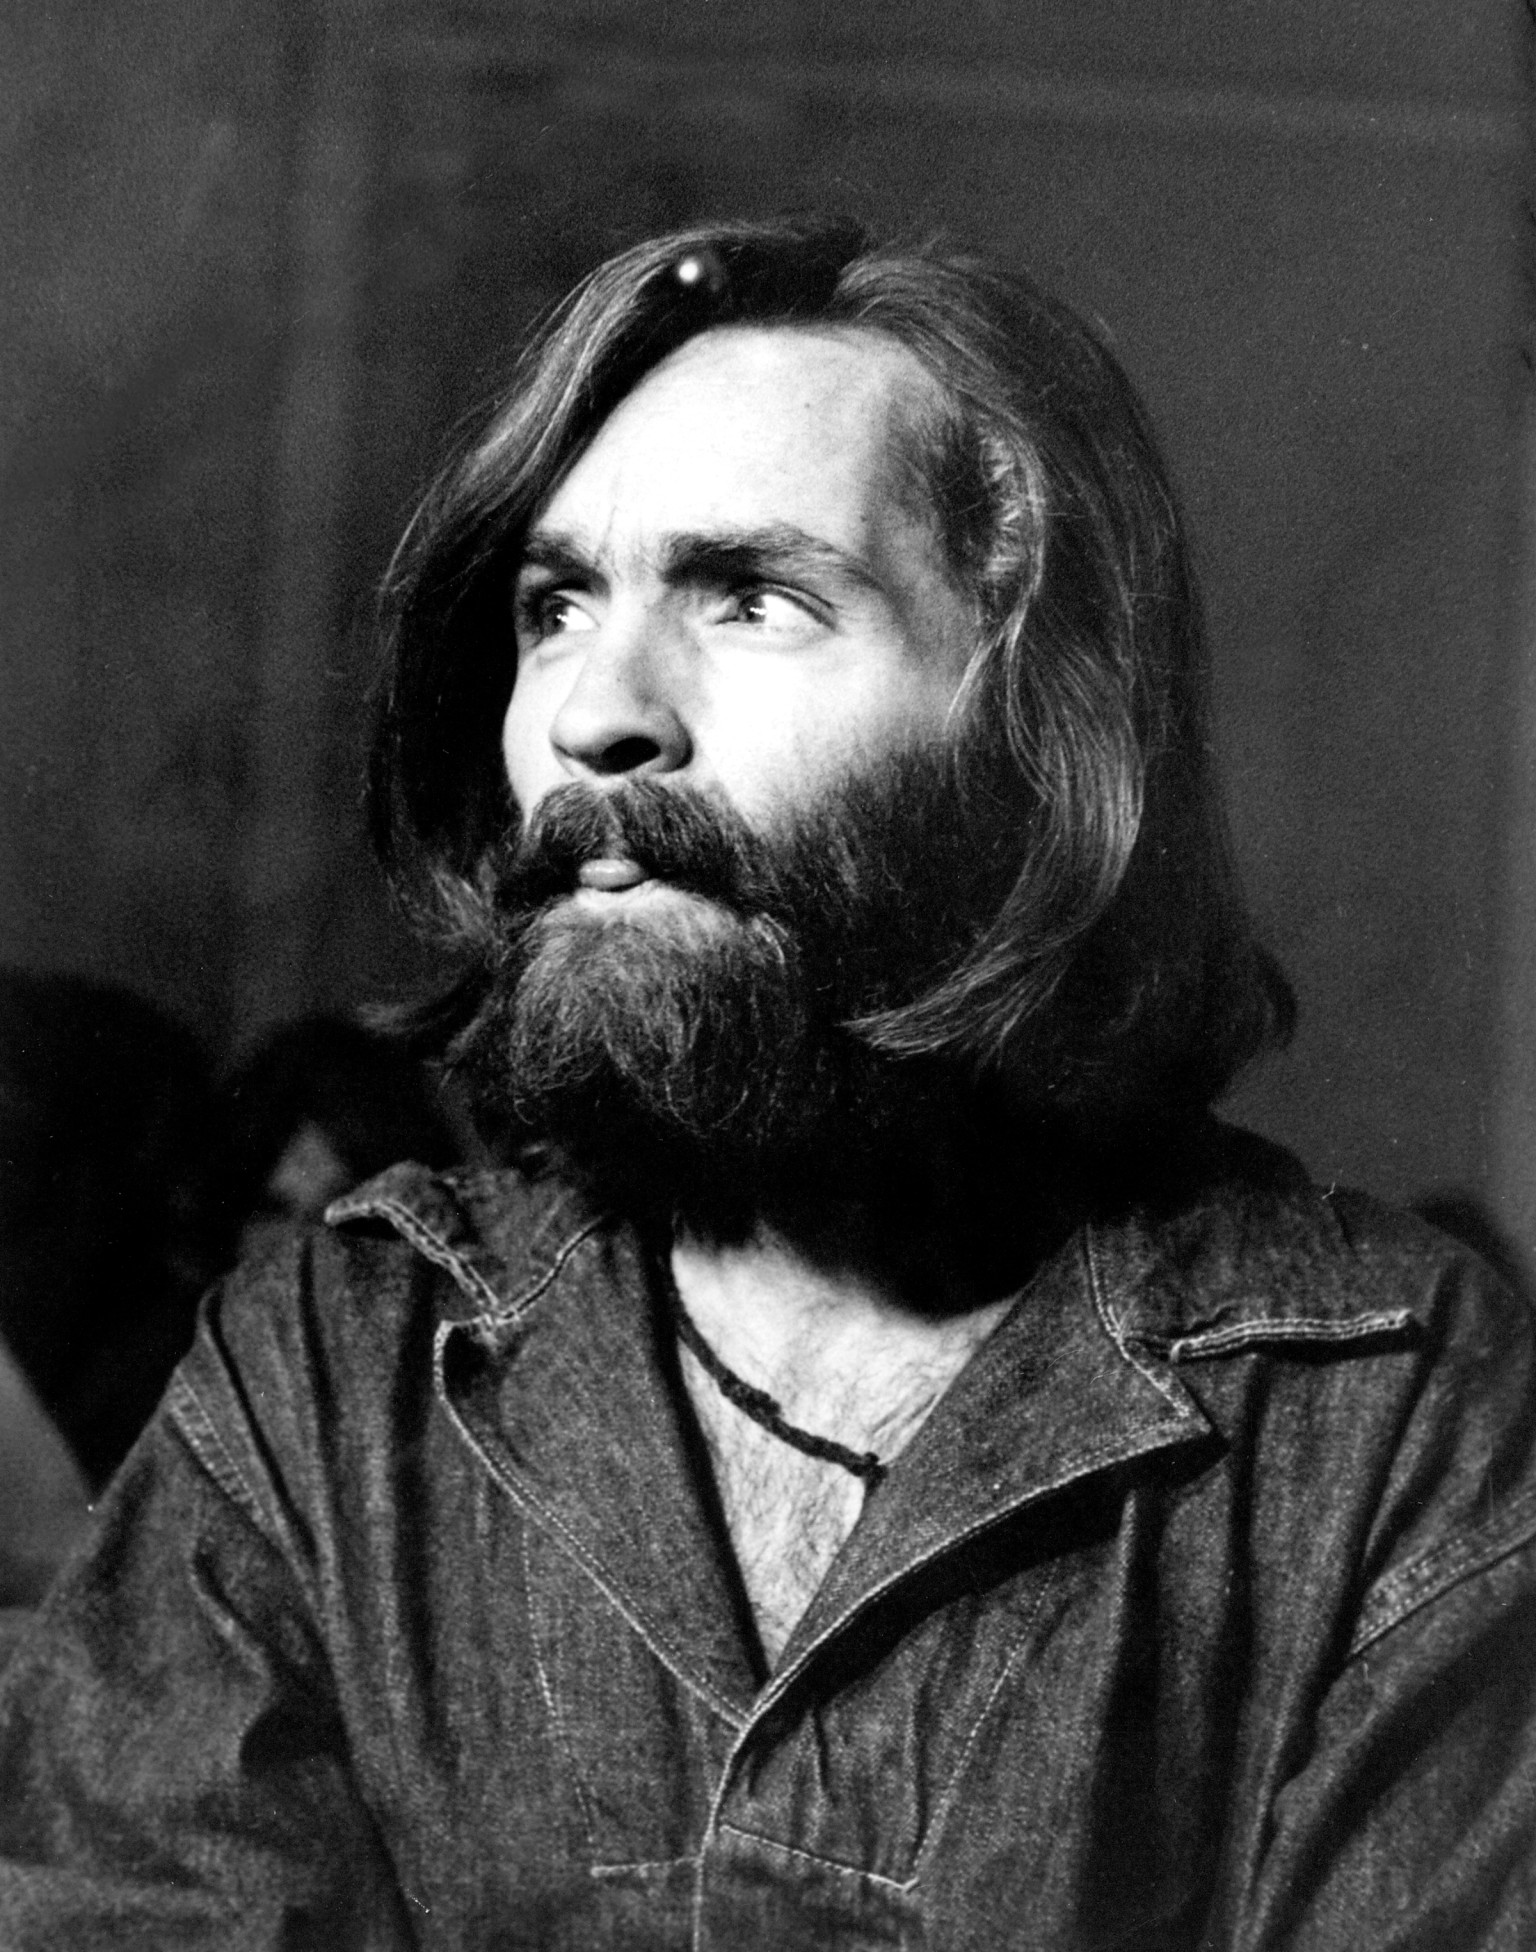 Charles manson jr suicide for pinterest